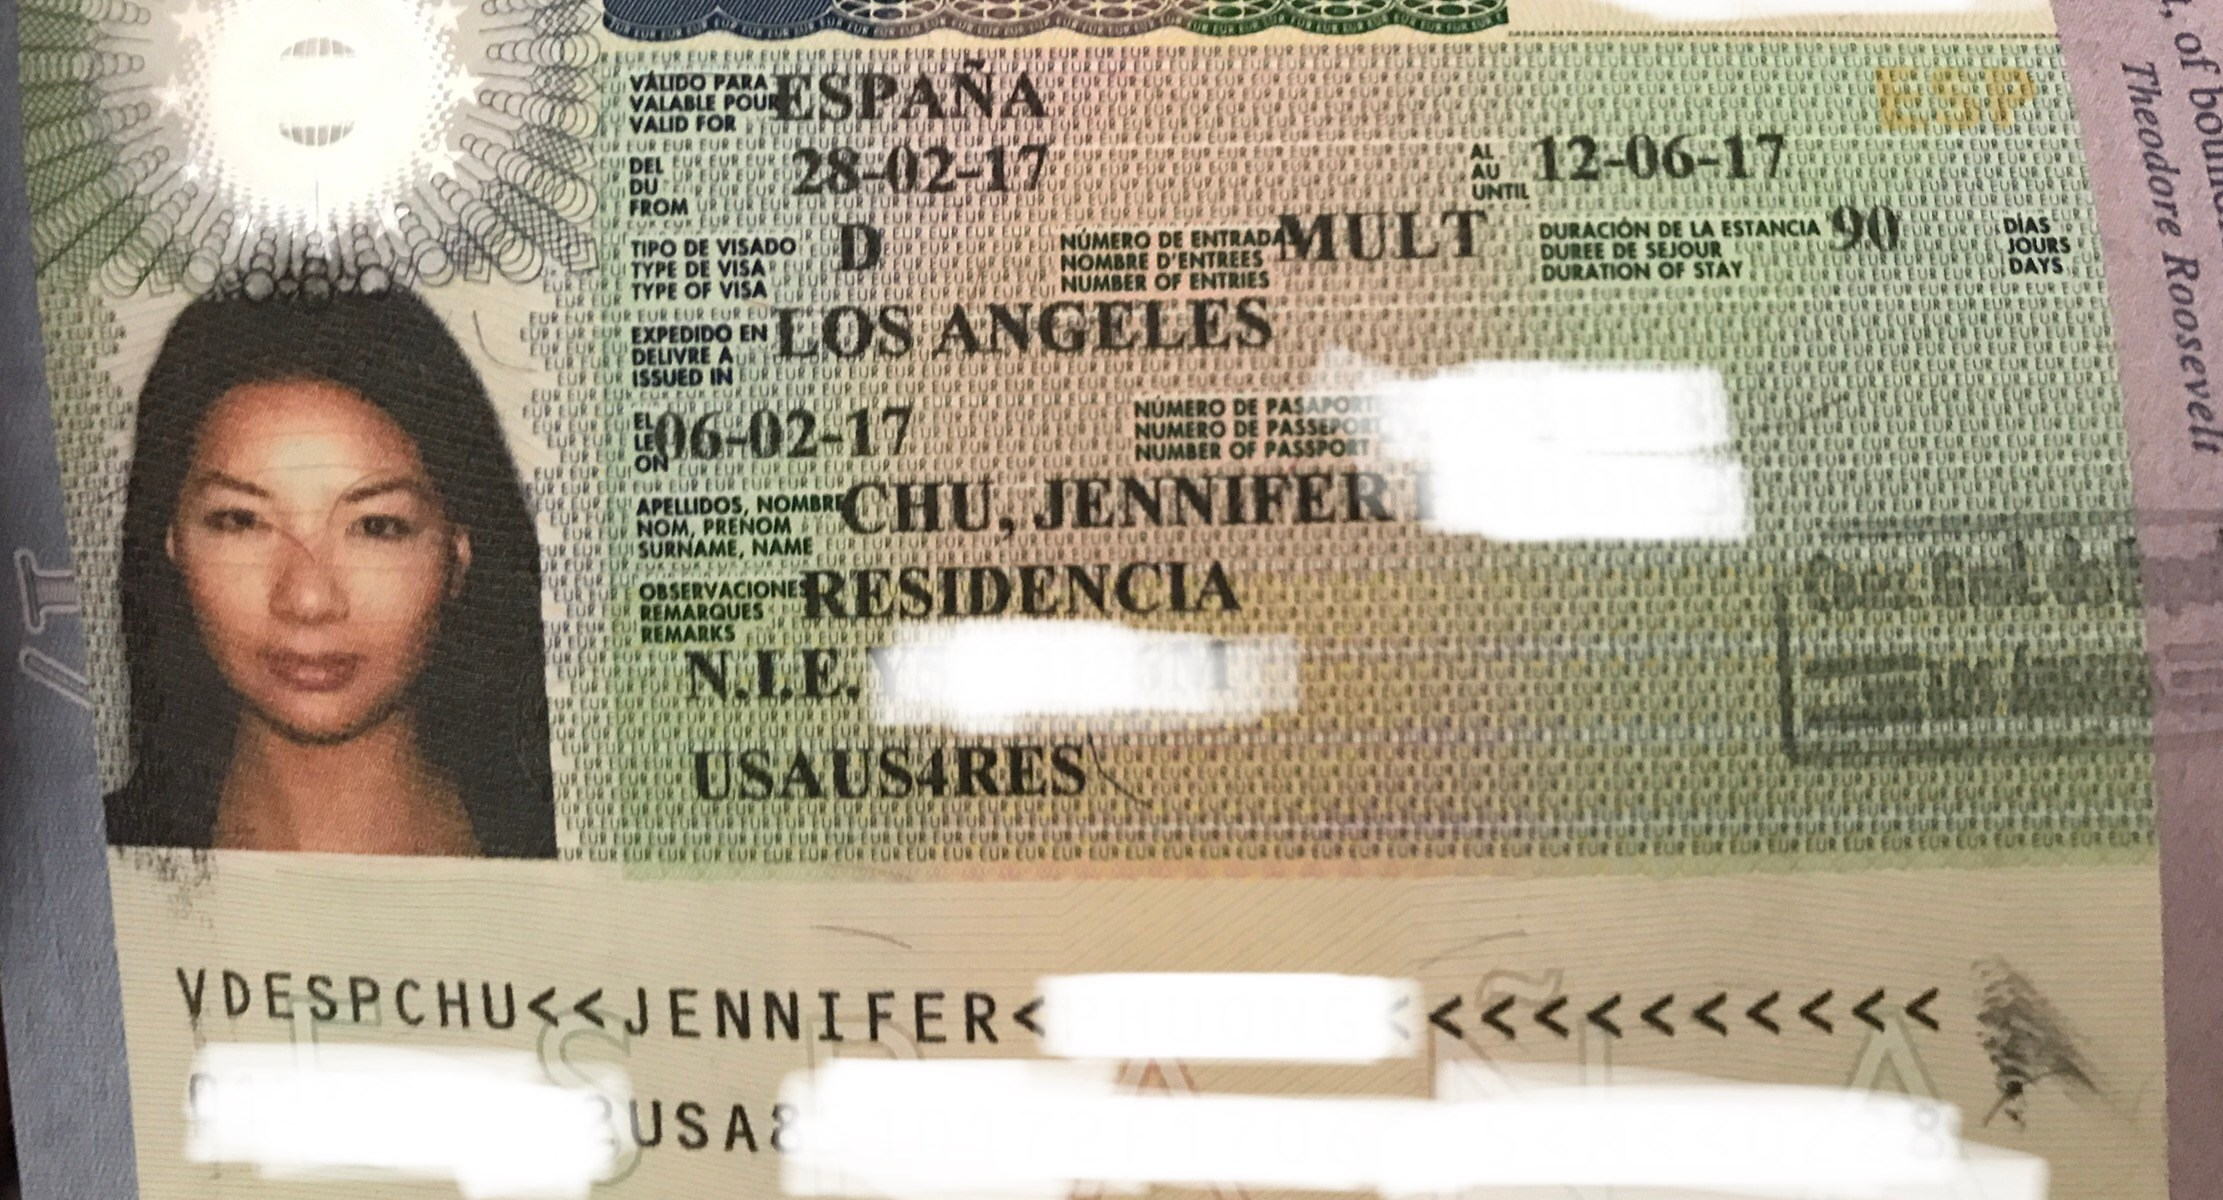 spanish non lucrative visa page in passport